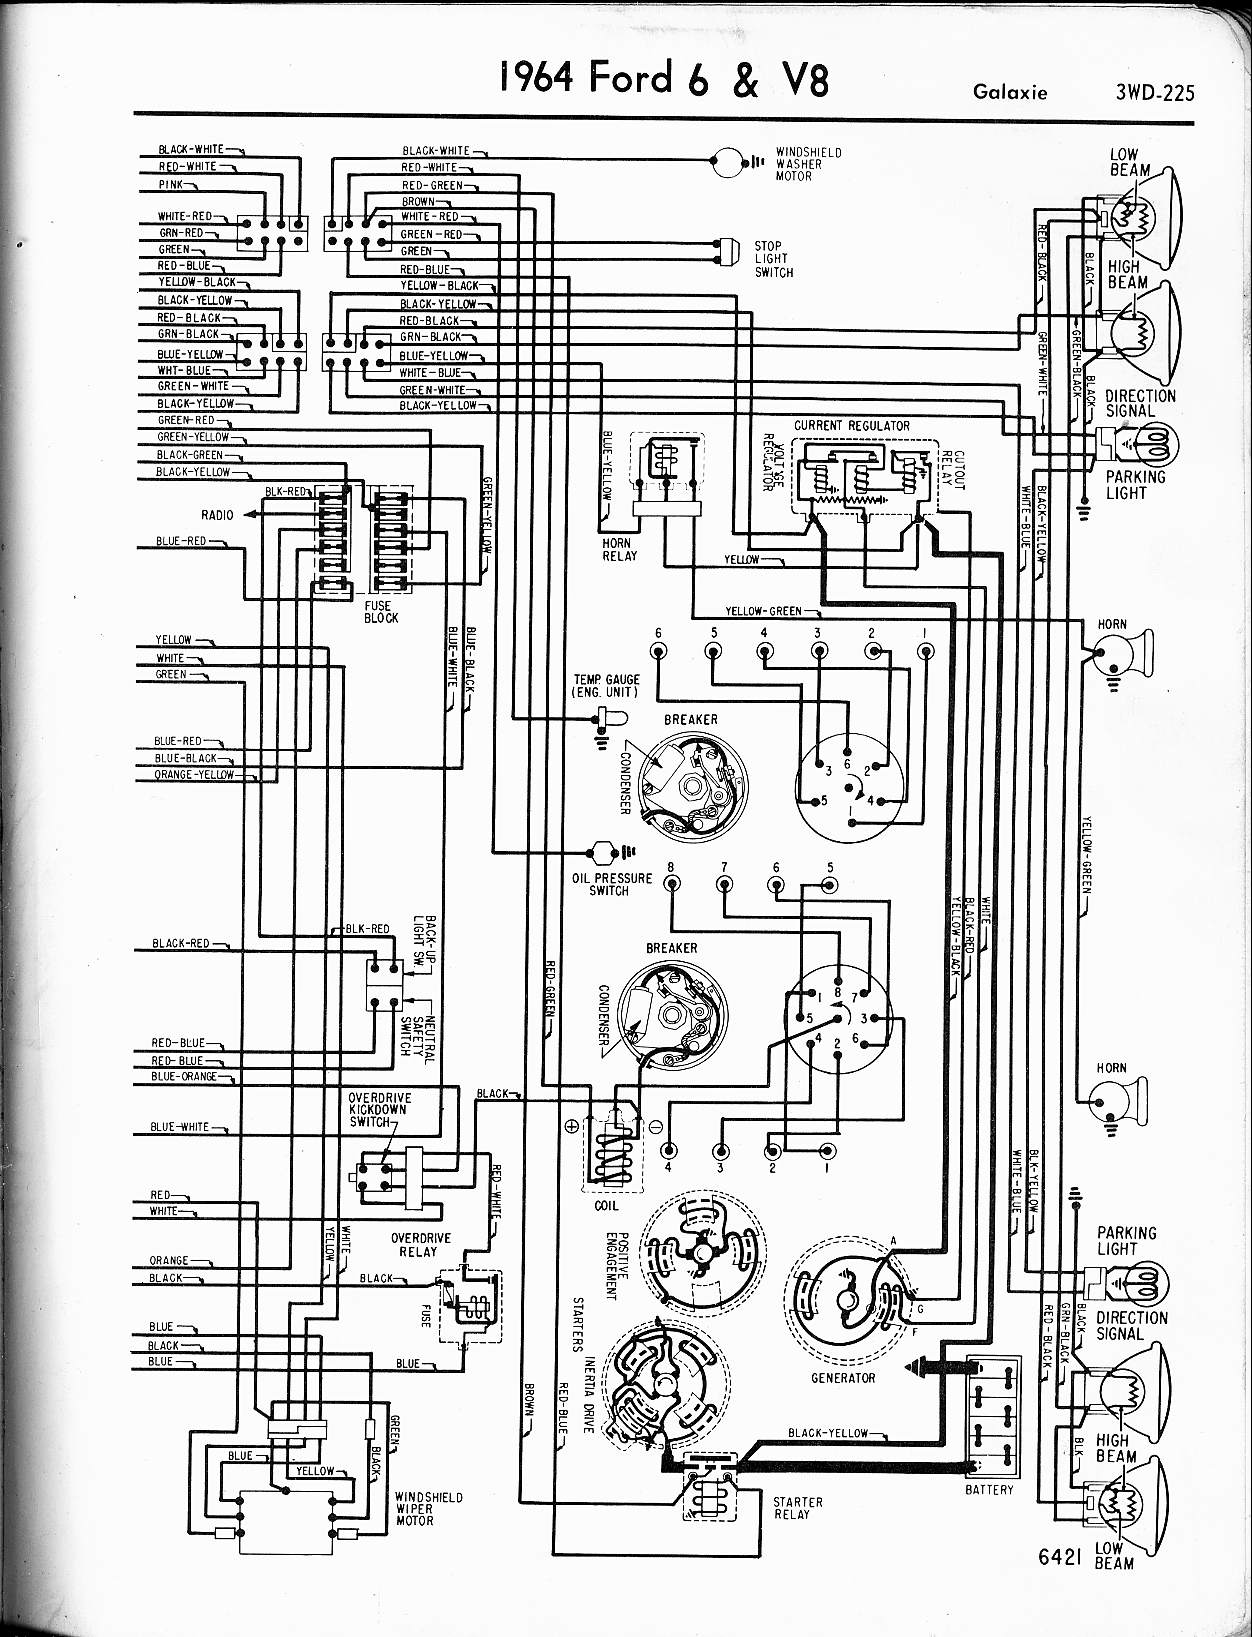 MWire5765 225 64 falcon wiring diagram 64 comet ignition wiring \u2022 wiring 64 valiant wiring diagram at bayanpartner.co